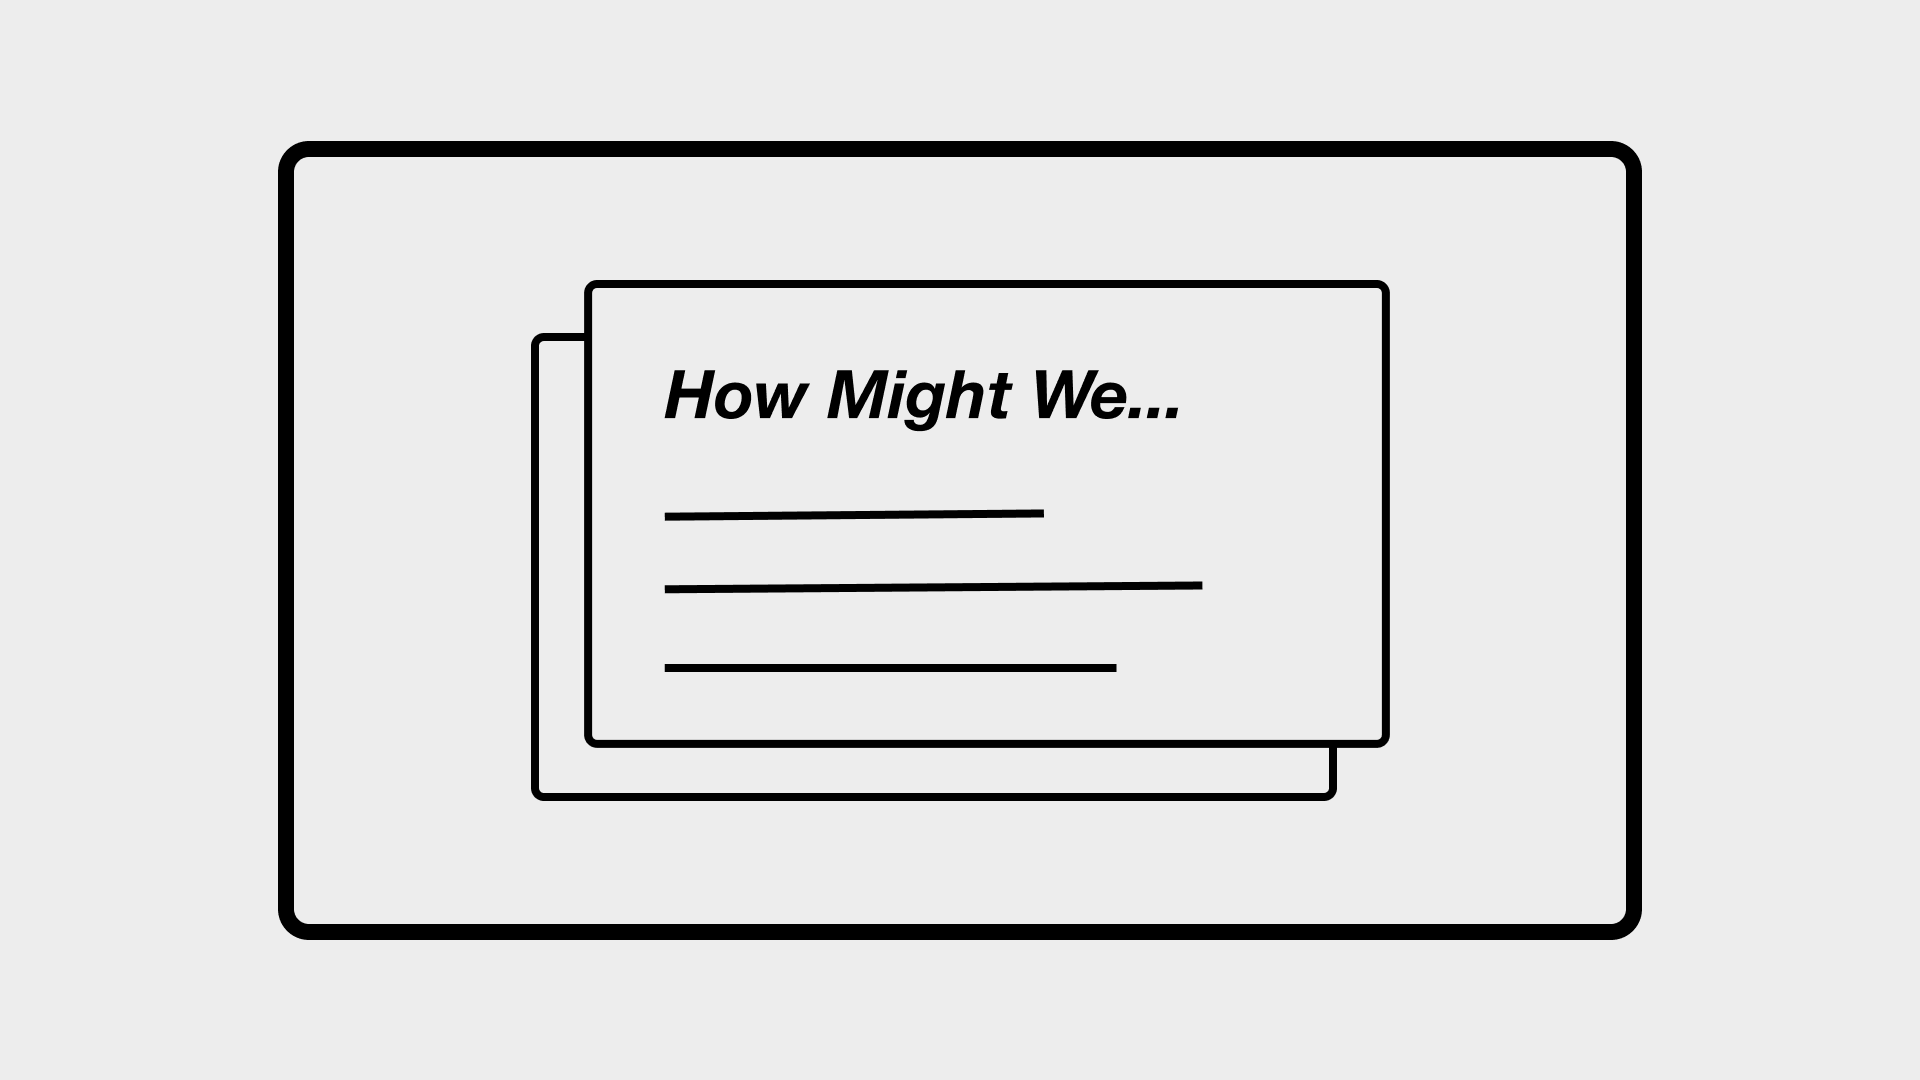 How Might We… Statement